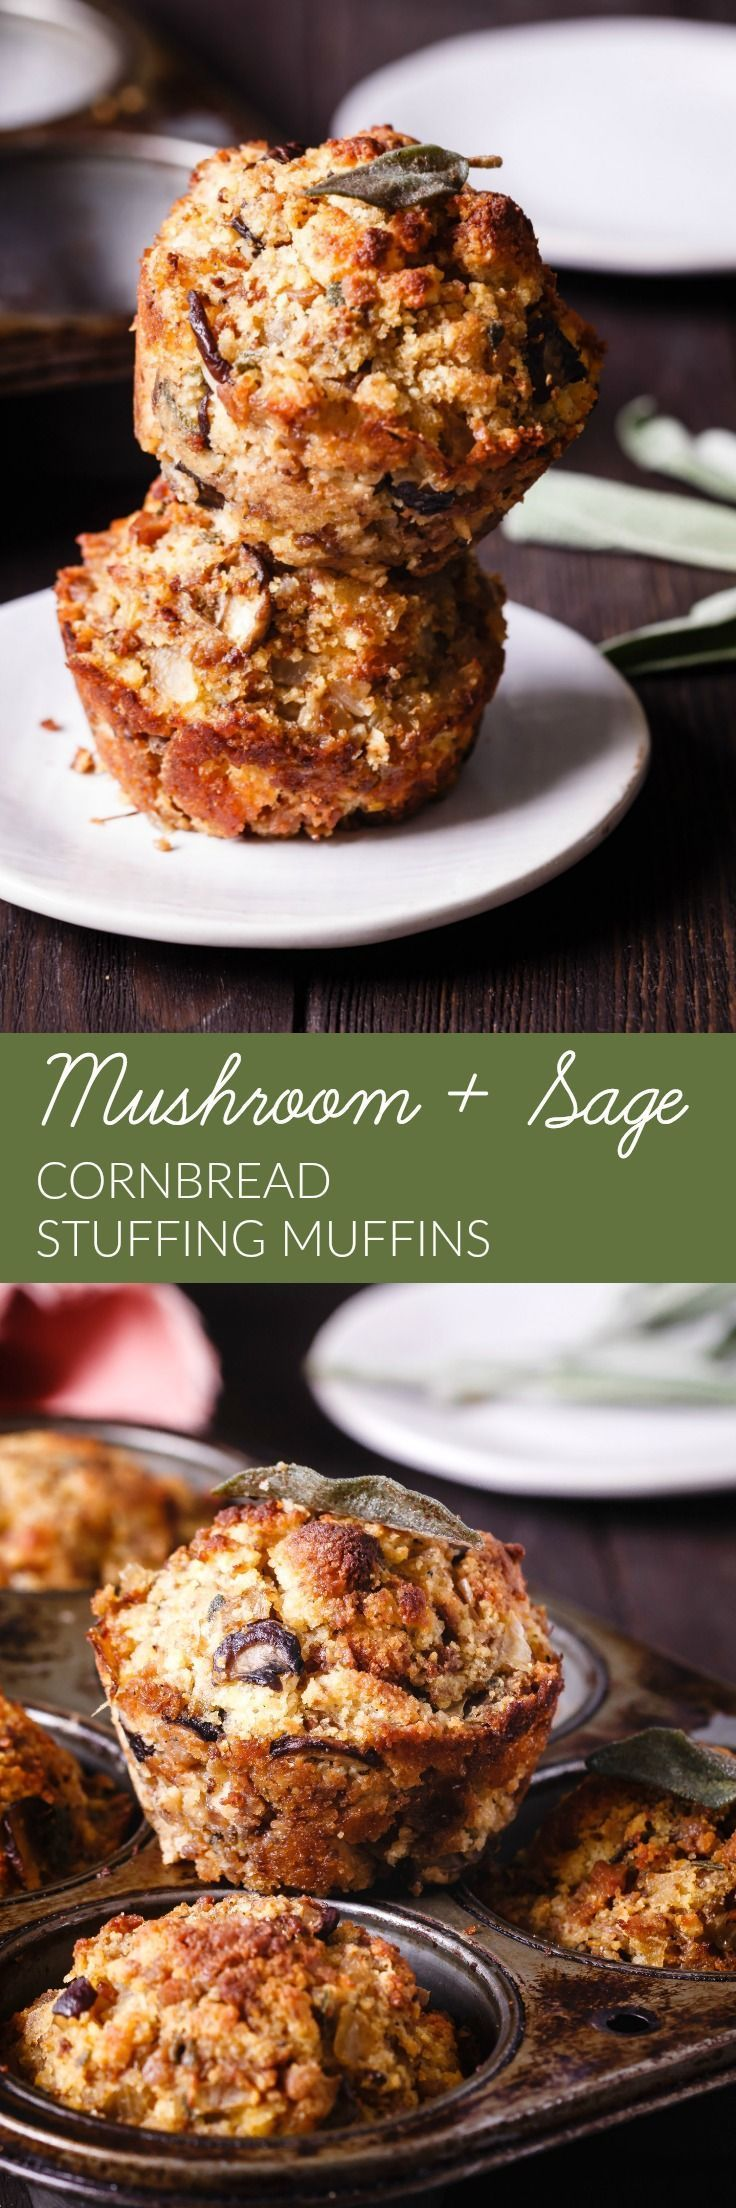 Moist and bursting with flavor from a variety of mushrooms and crispy sage, these Cornbread Stuffing Muffins are an imaginative way to serve stuffing!